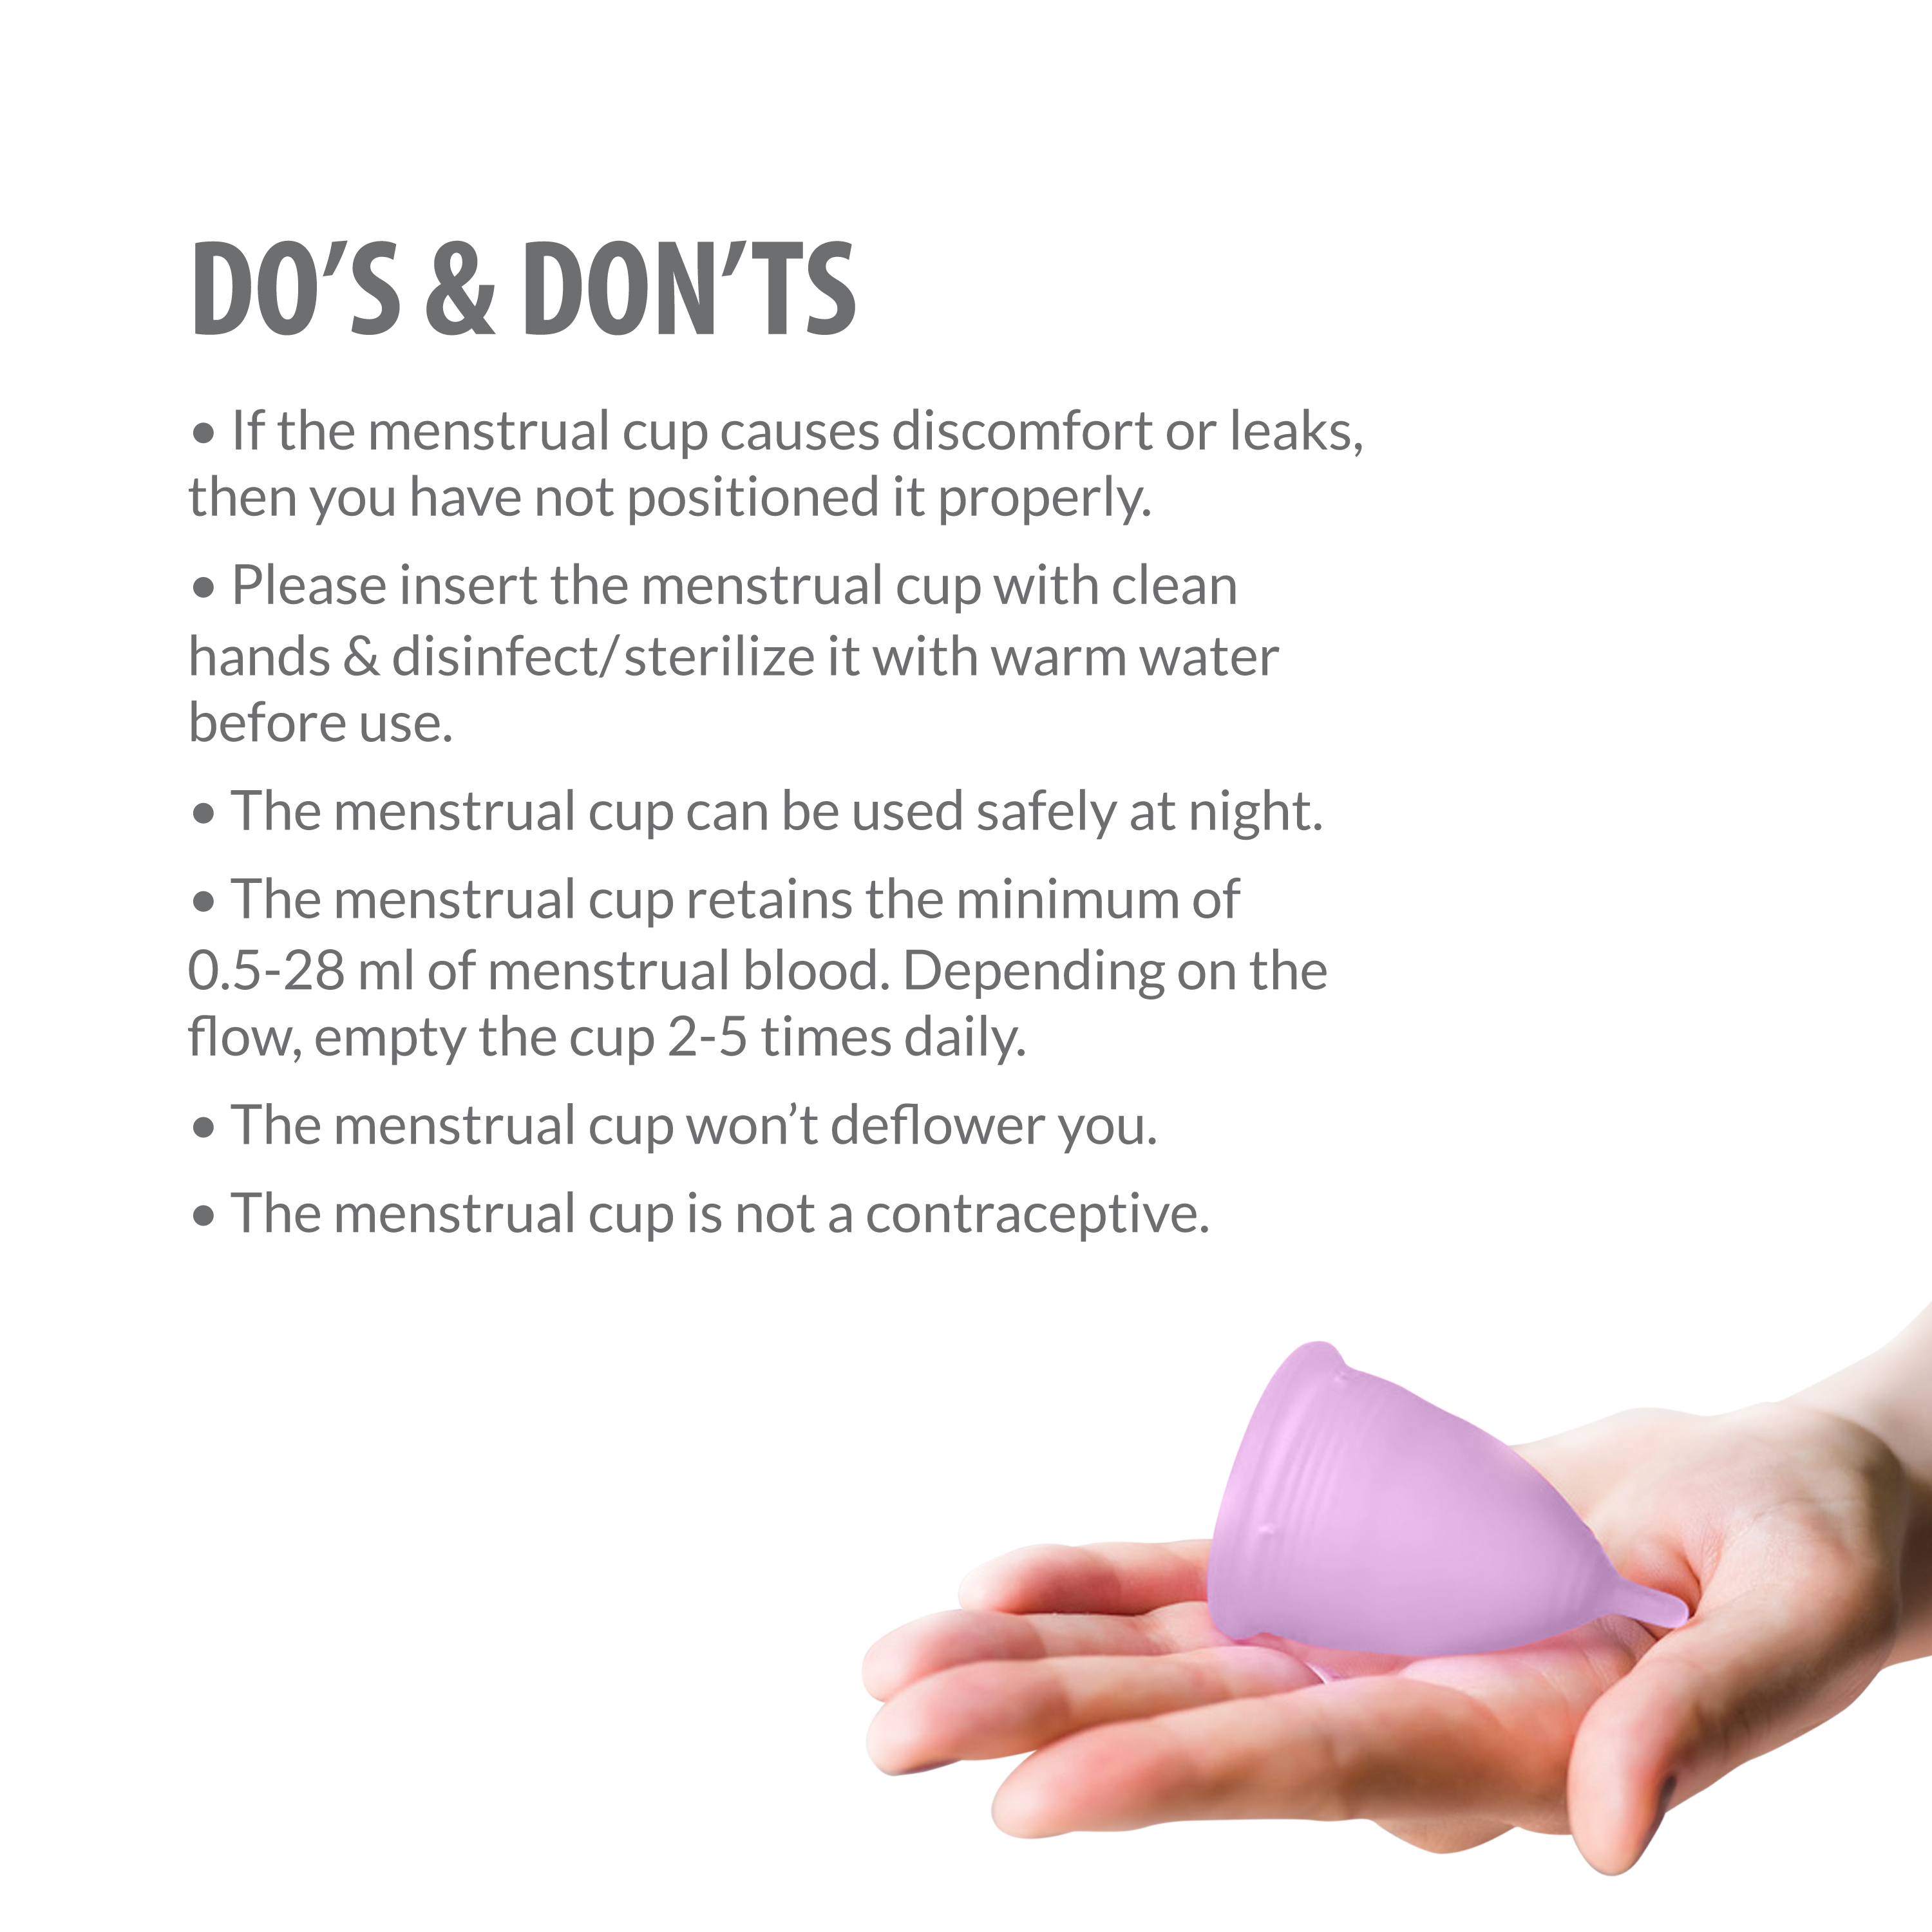 Sirona FDA Approved Reusable Menstrual Cup With Medical Grade Silicone - Large, Pack of 2-375572